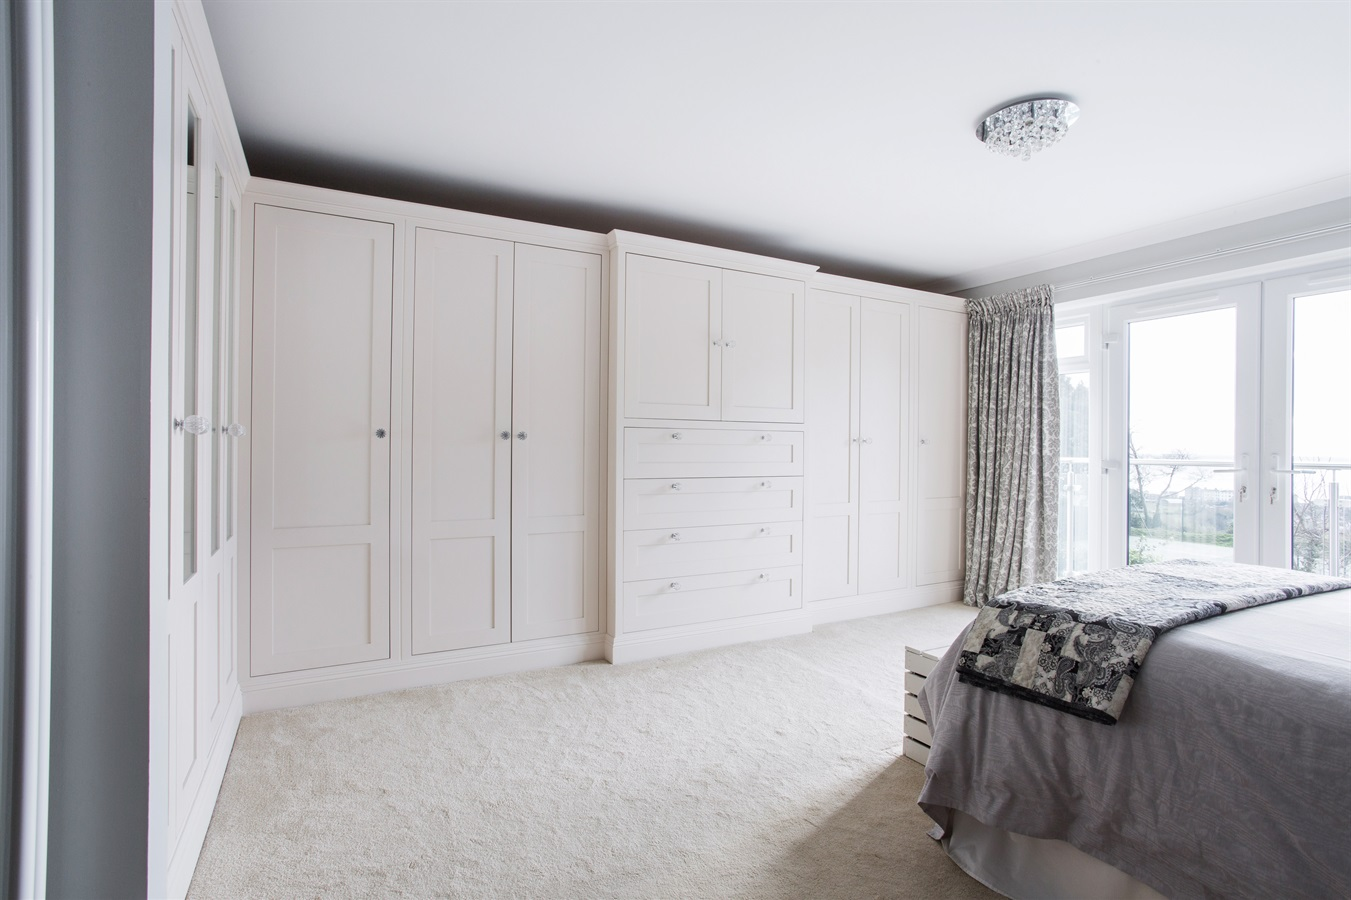 Burlanes Interiors - Burlanes were commissioned to design and handmake beautiful fitted bedroom furniture and wardrobes, with lots of storage space.